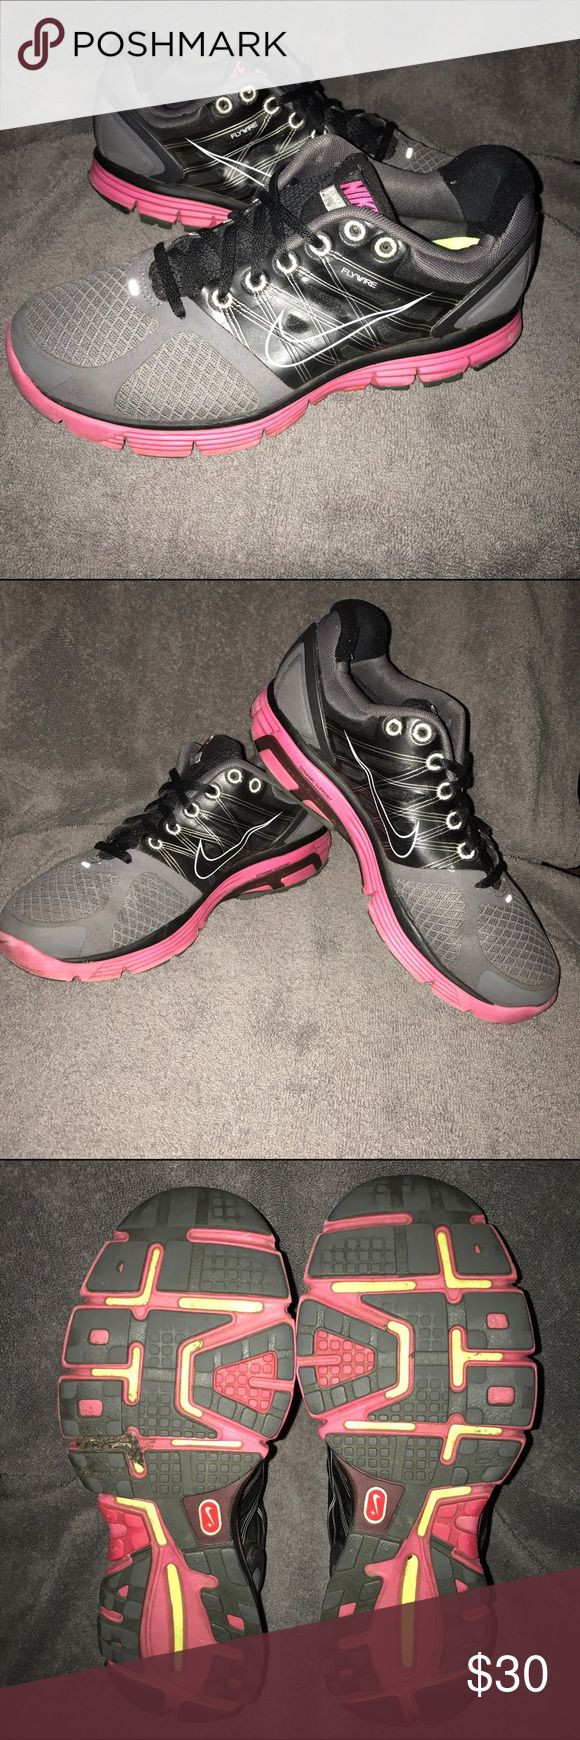 Women's Nike Lunarglide 2 Sz 8.5 Worn but not worn out. Shoes some signs of wear but still a solid shoe for your workouts! Nike Shoes Athletic Shoes